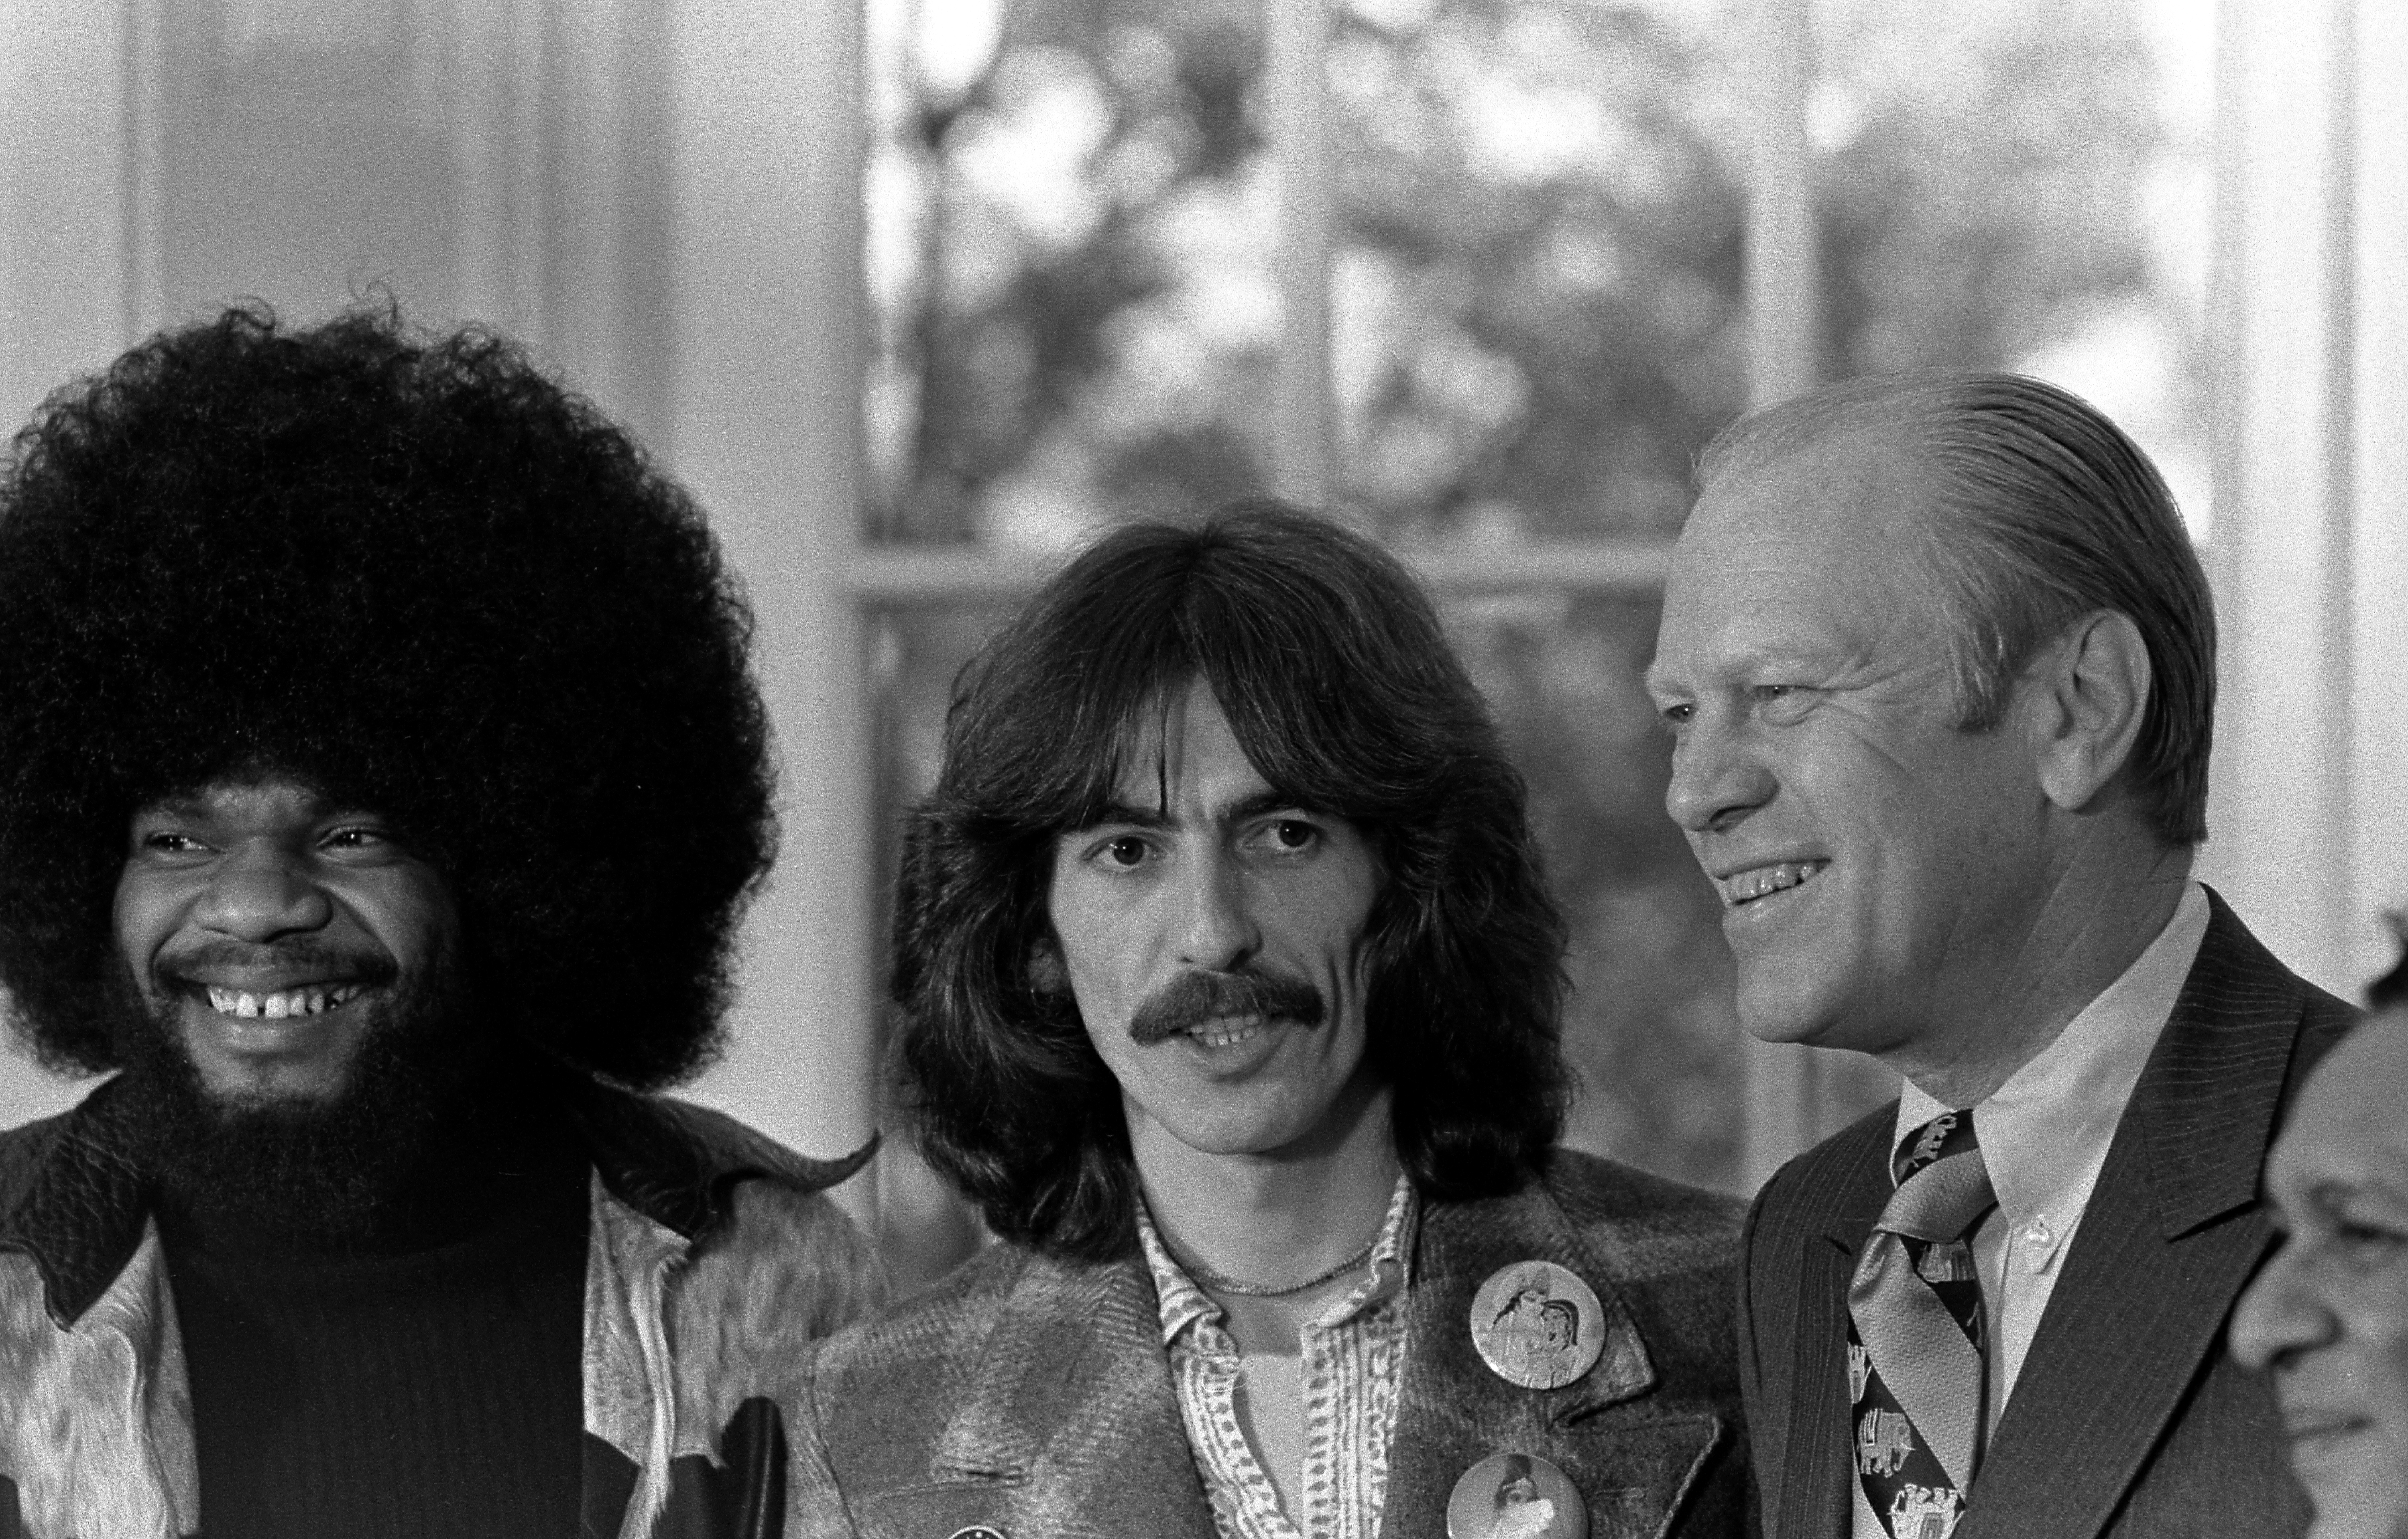 http://upload.wikimedia.org/wikipedia/commons/0/0b/Billy_Preston,_George_Harrison,_Gerald_Ford,_Ravi_Shankar.jpg